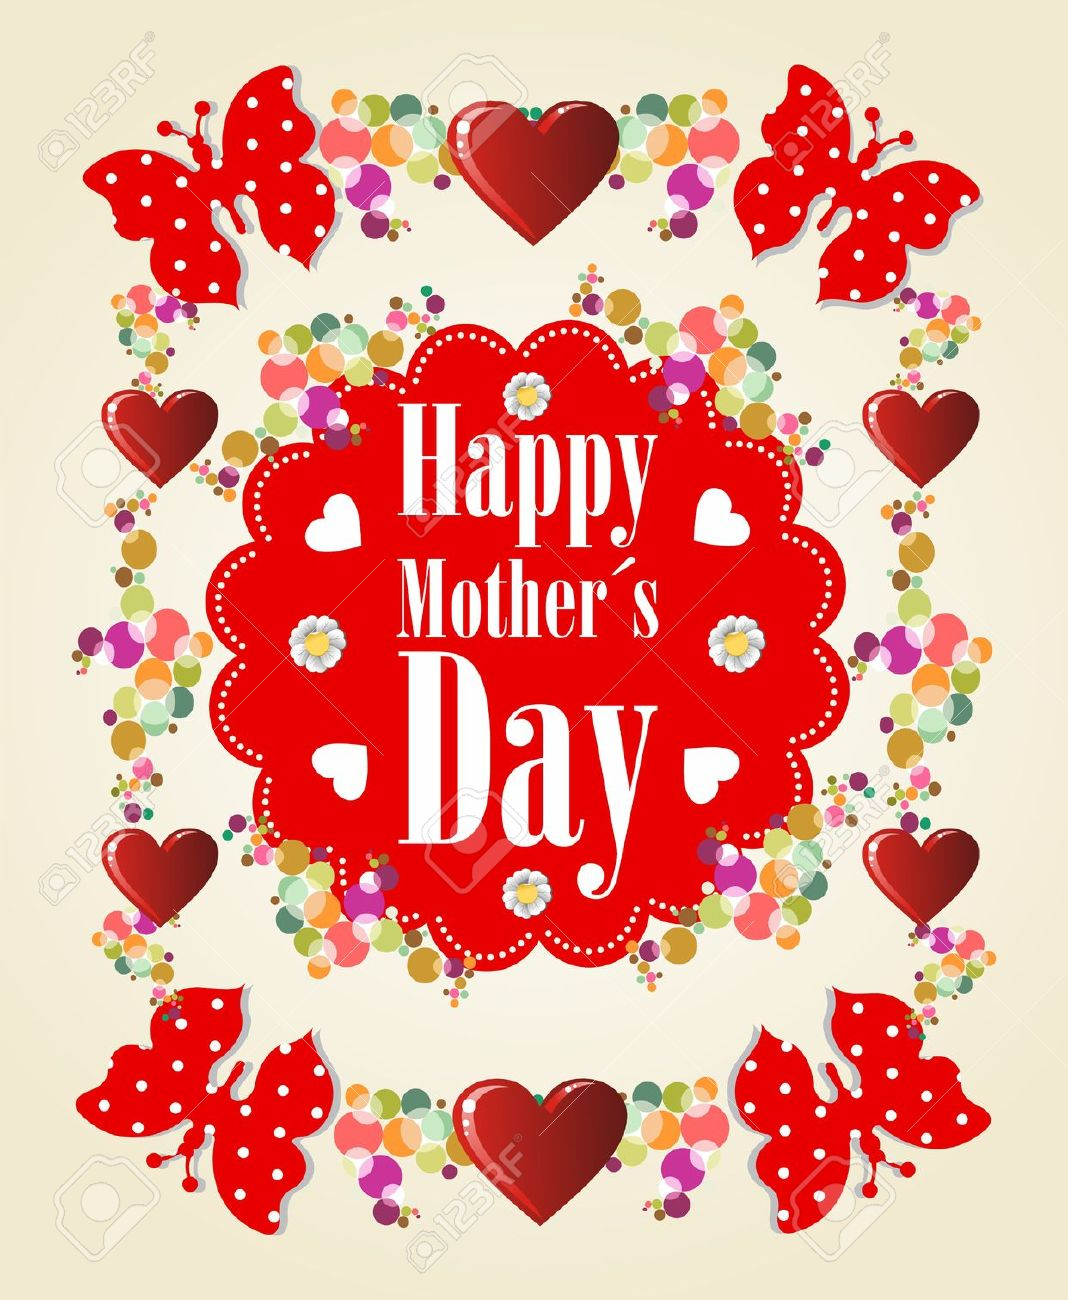 Inspirational Quotes For Mothers Mothers Day Inspirational Quotes  Happy Valentines Day 2018